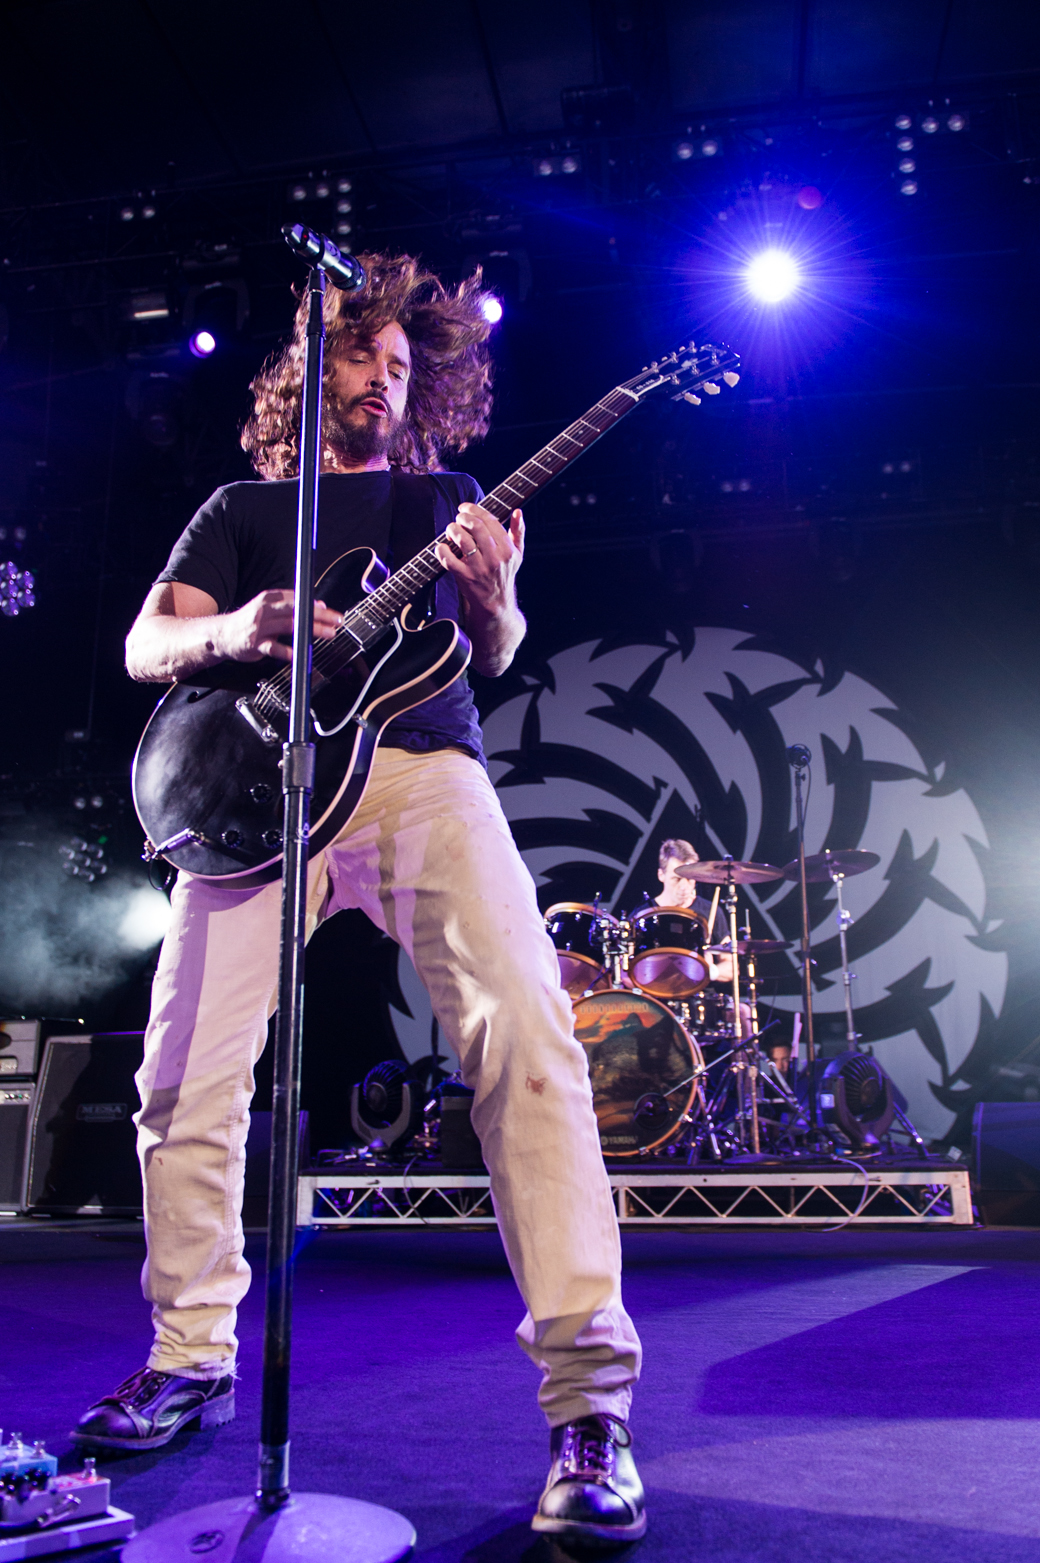 Chris Cornell of Soundgarden performs at Sidney Myer Music Bowl in Melbourne 2012